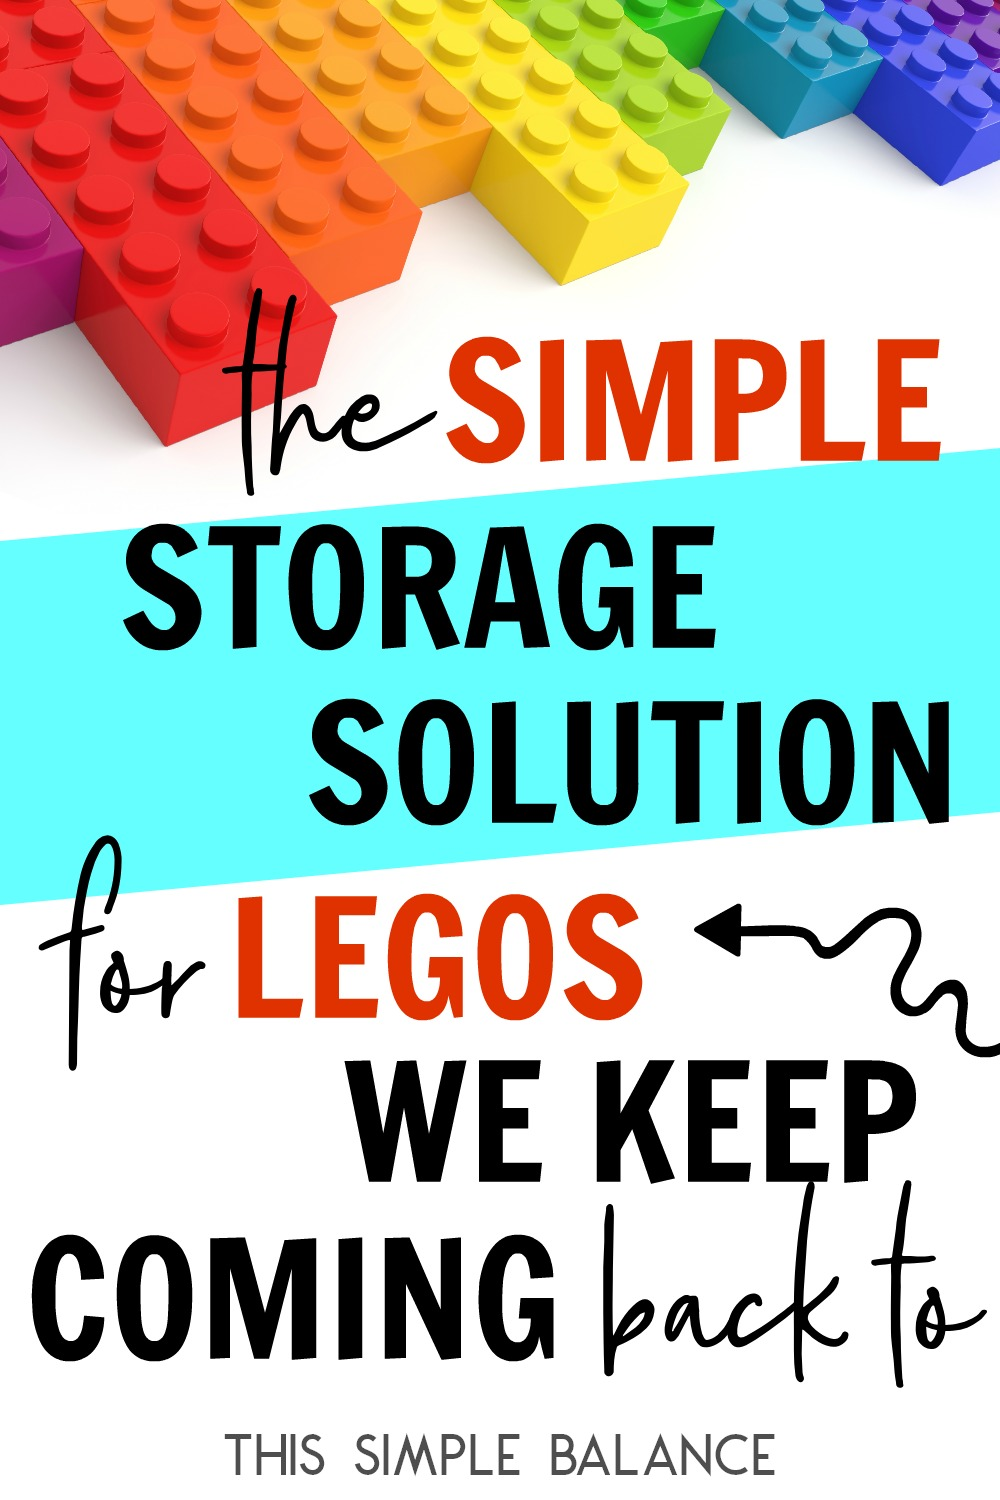 Lego Storage Organization: Looking for a cheap and simple solution? Every time I think of trying something else, we come back to this simple storage solution.